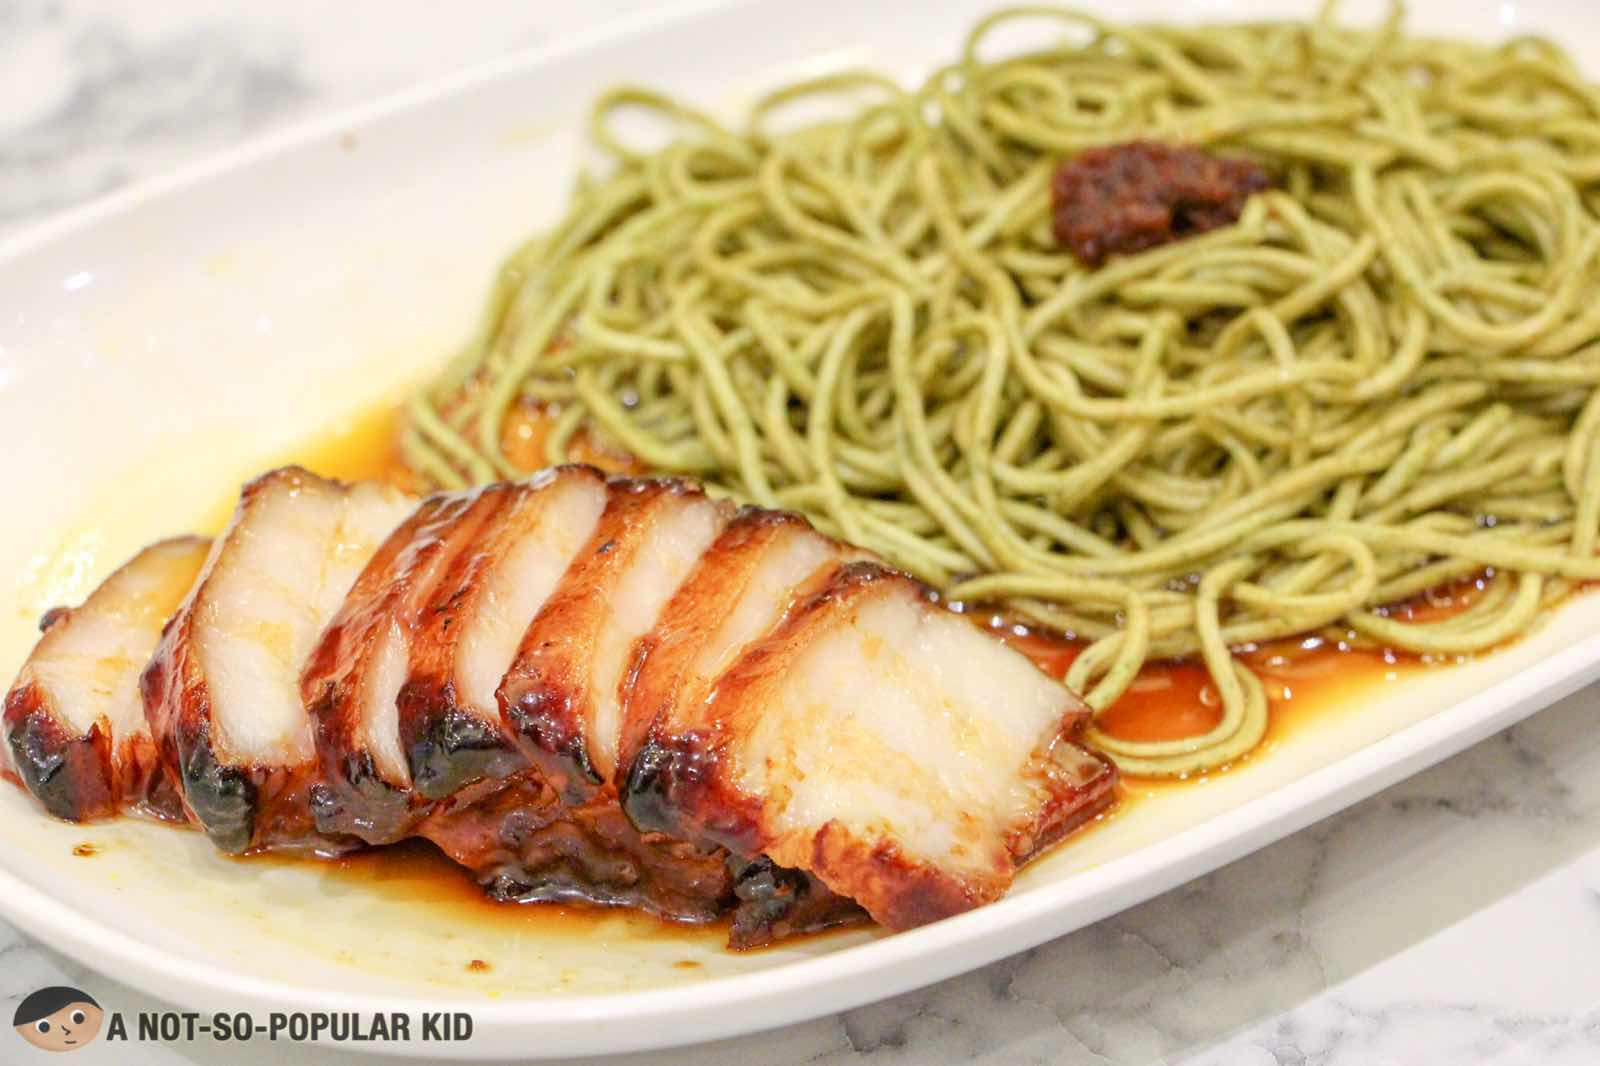 Char Siew Vegetable Noodles of Hawker Chan